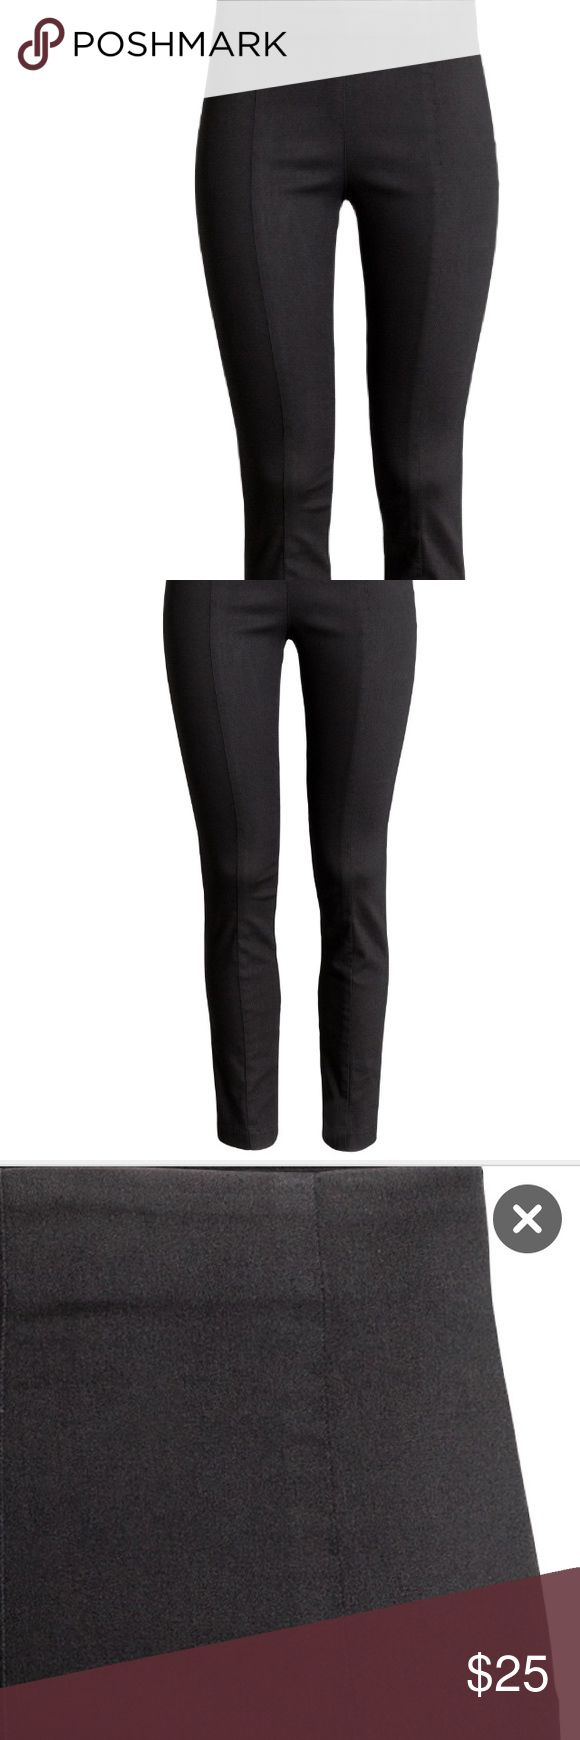 TREGGINGS: the latest craze! Trouser-leggings Treggings! The latest craze. I can see why! These super comfortable, super flattering, trouser leggings are perfect for the office, a night out, or just running errands. Pants